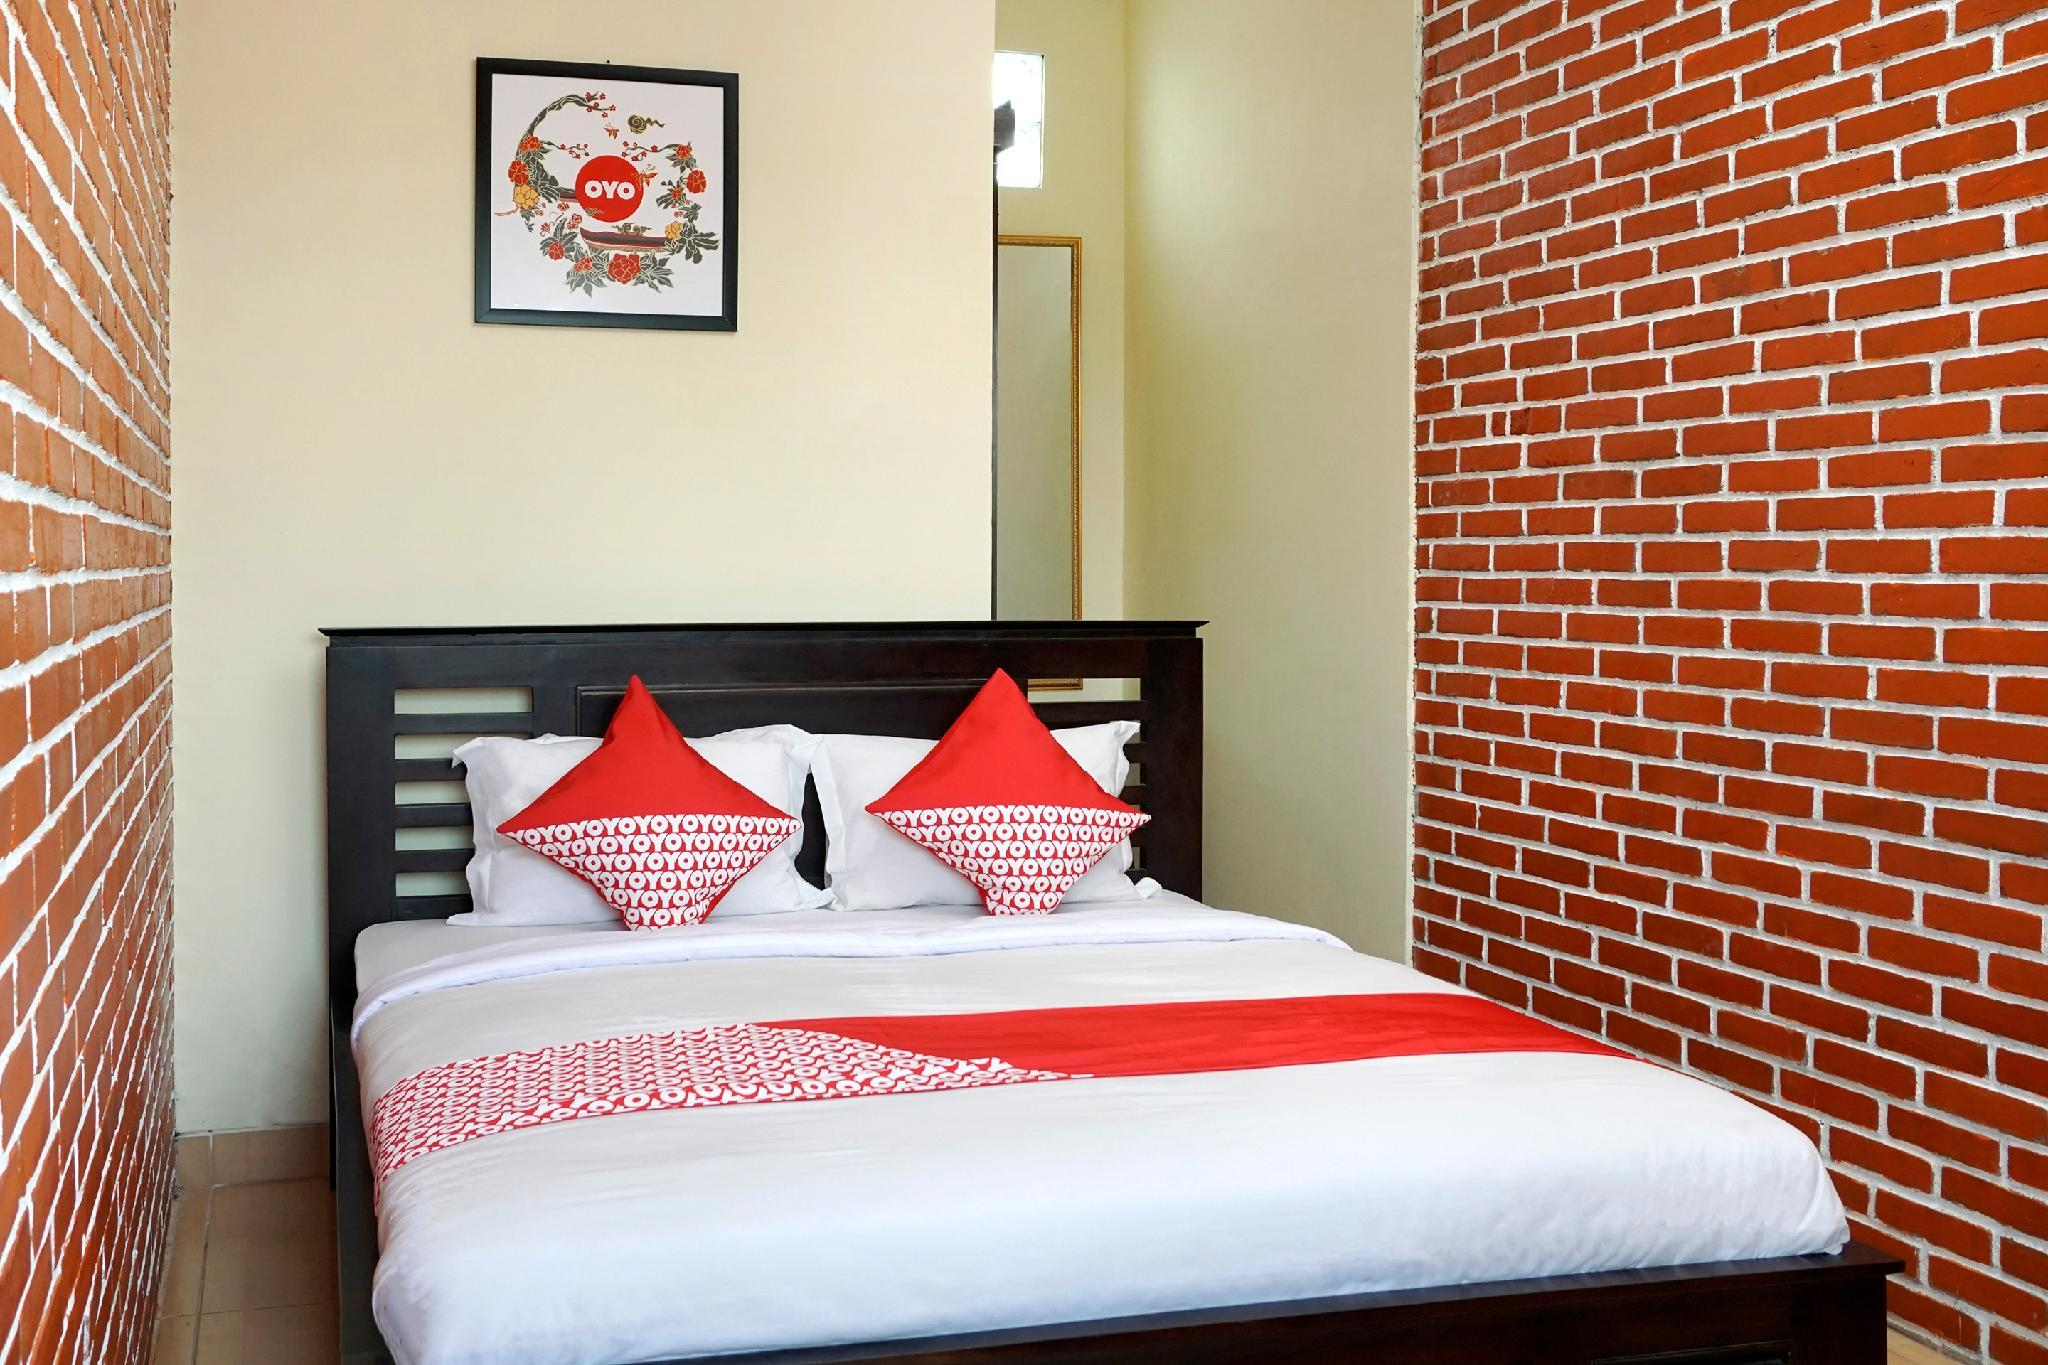 OYO 465 Alam Citra Bed And Breakfast